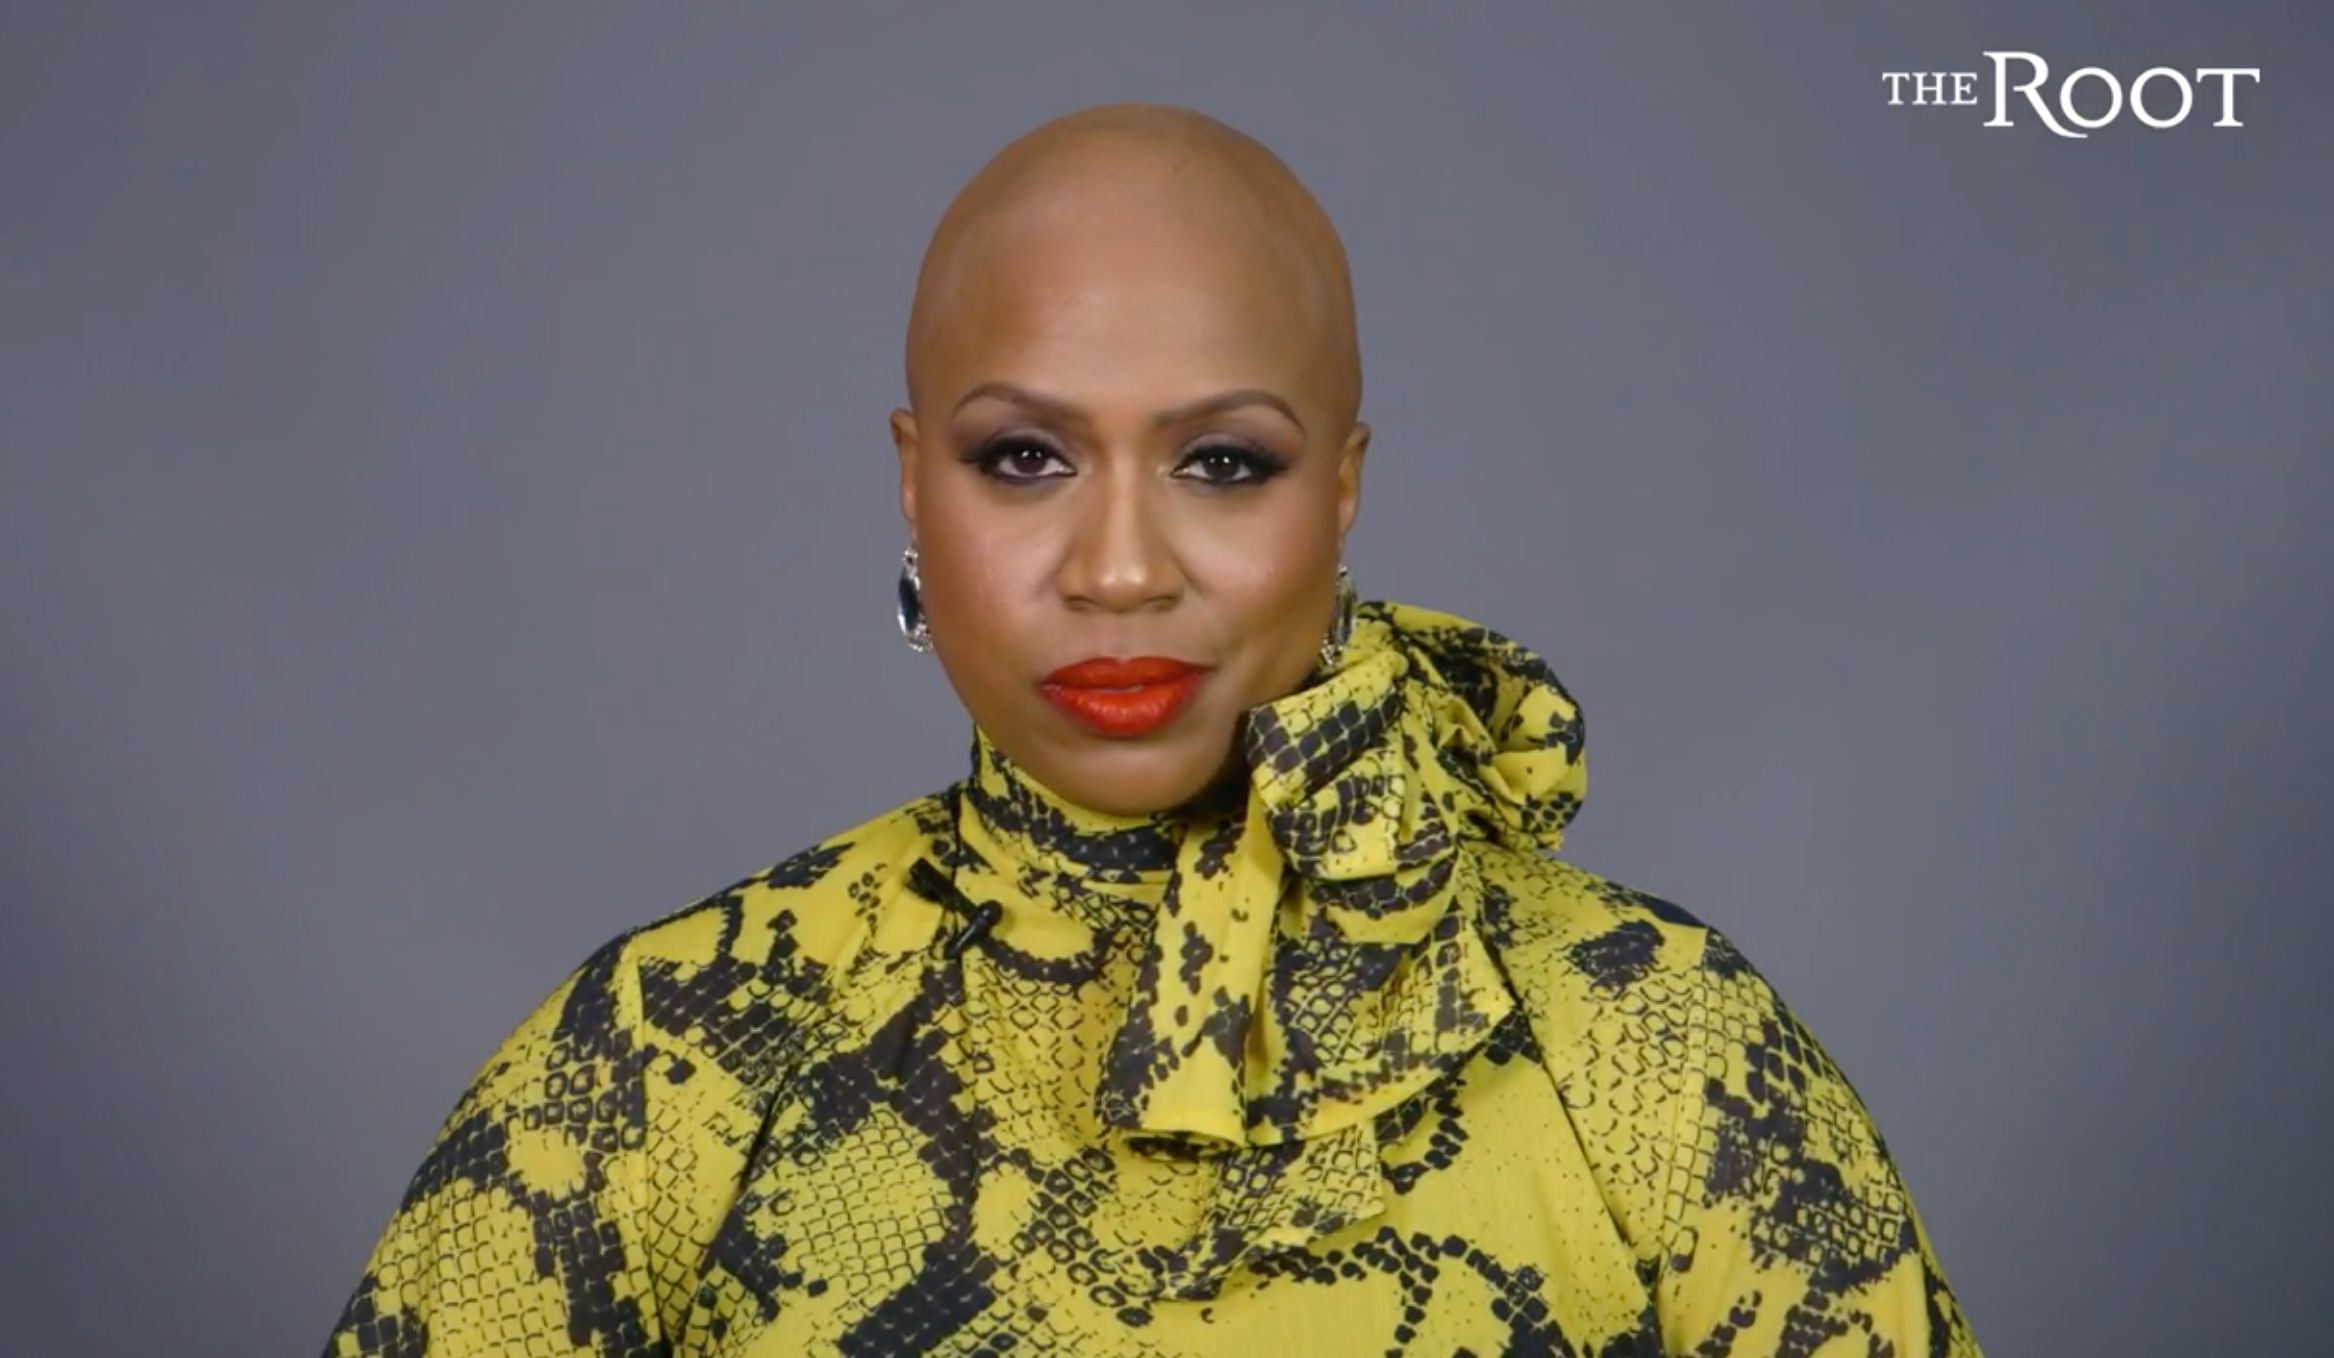 Ayanna Pressley Reveals She Has Alopecia ...